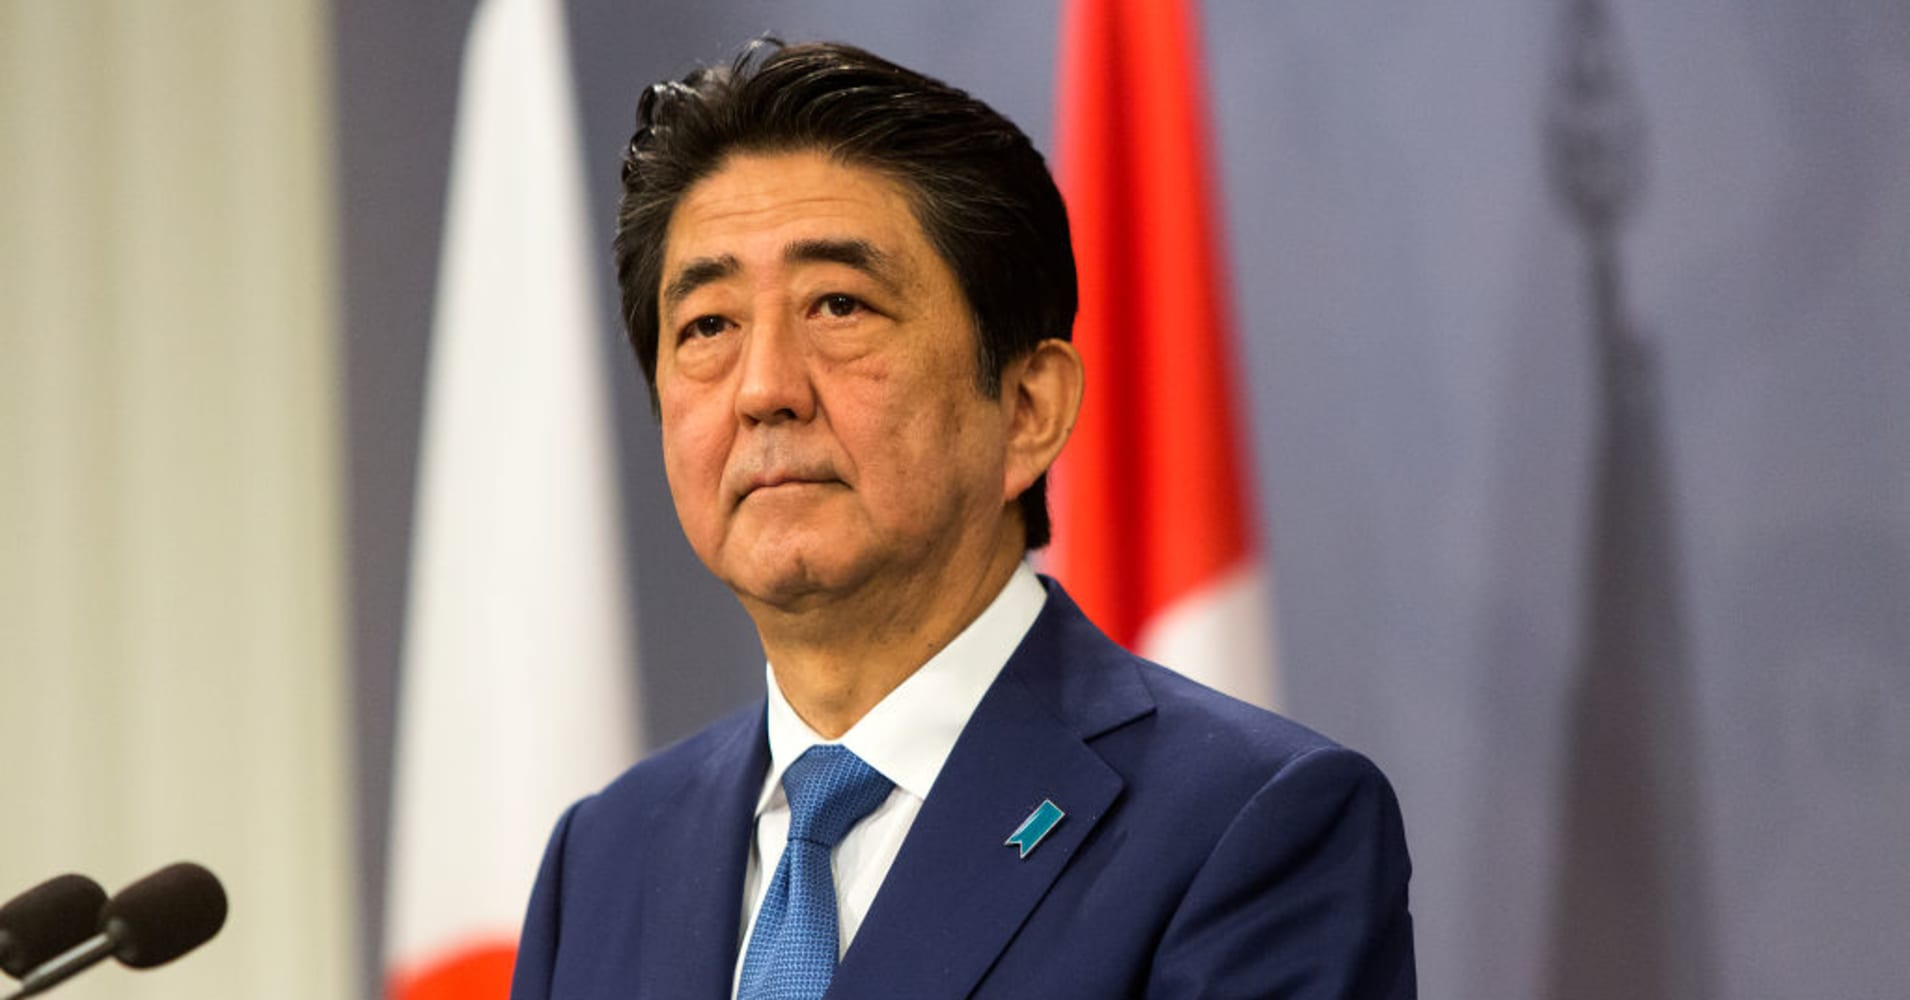 Japan PM Abe's ruling bloc on track for big election win, with constitutional reform seen likely